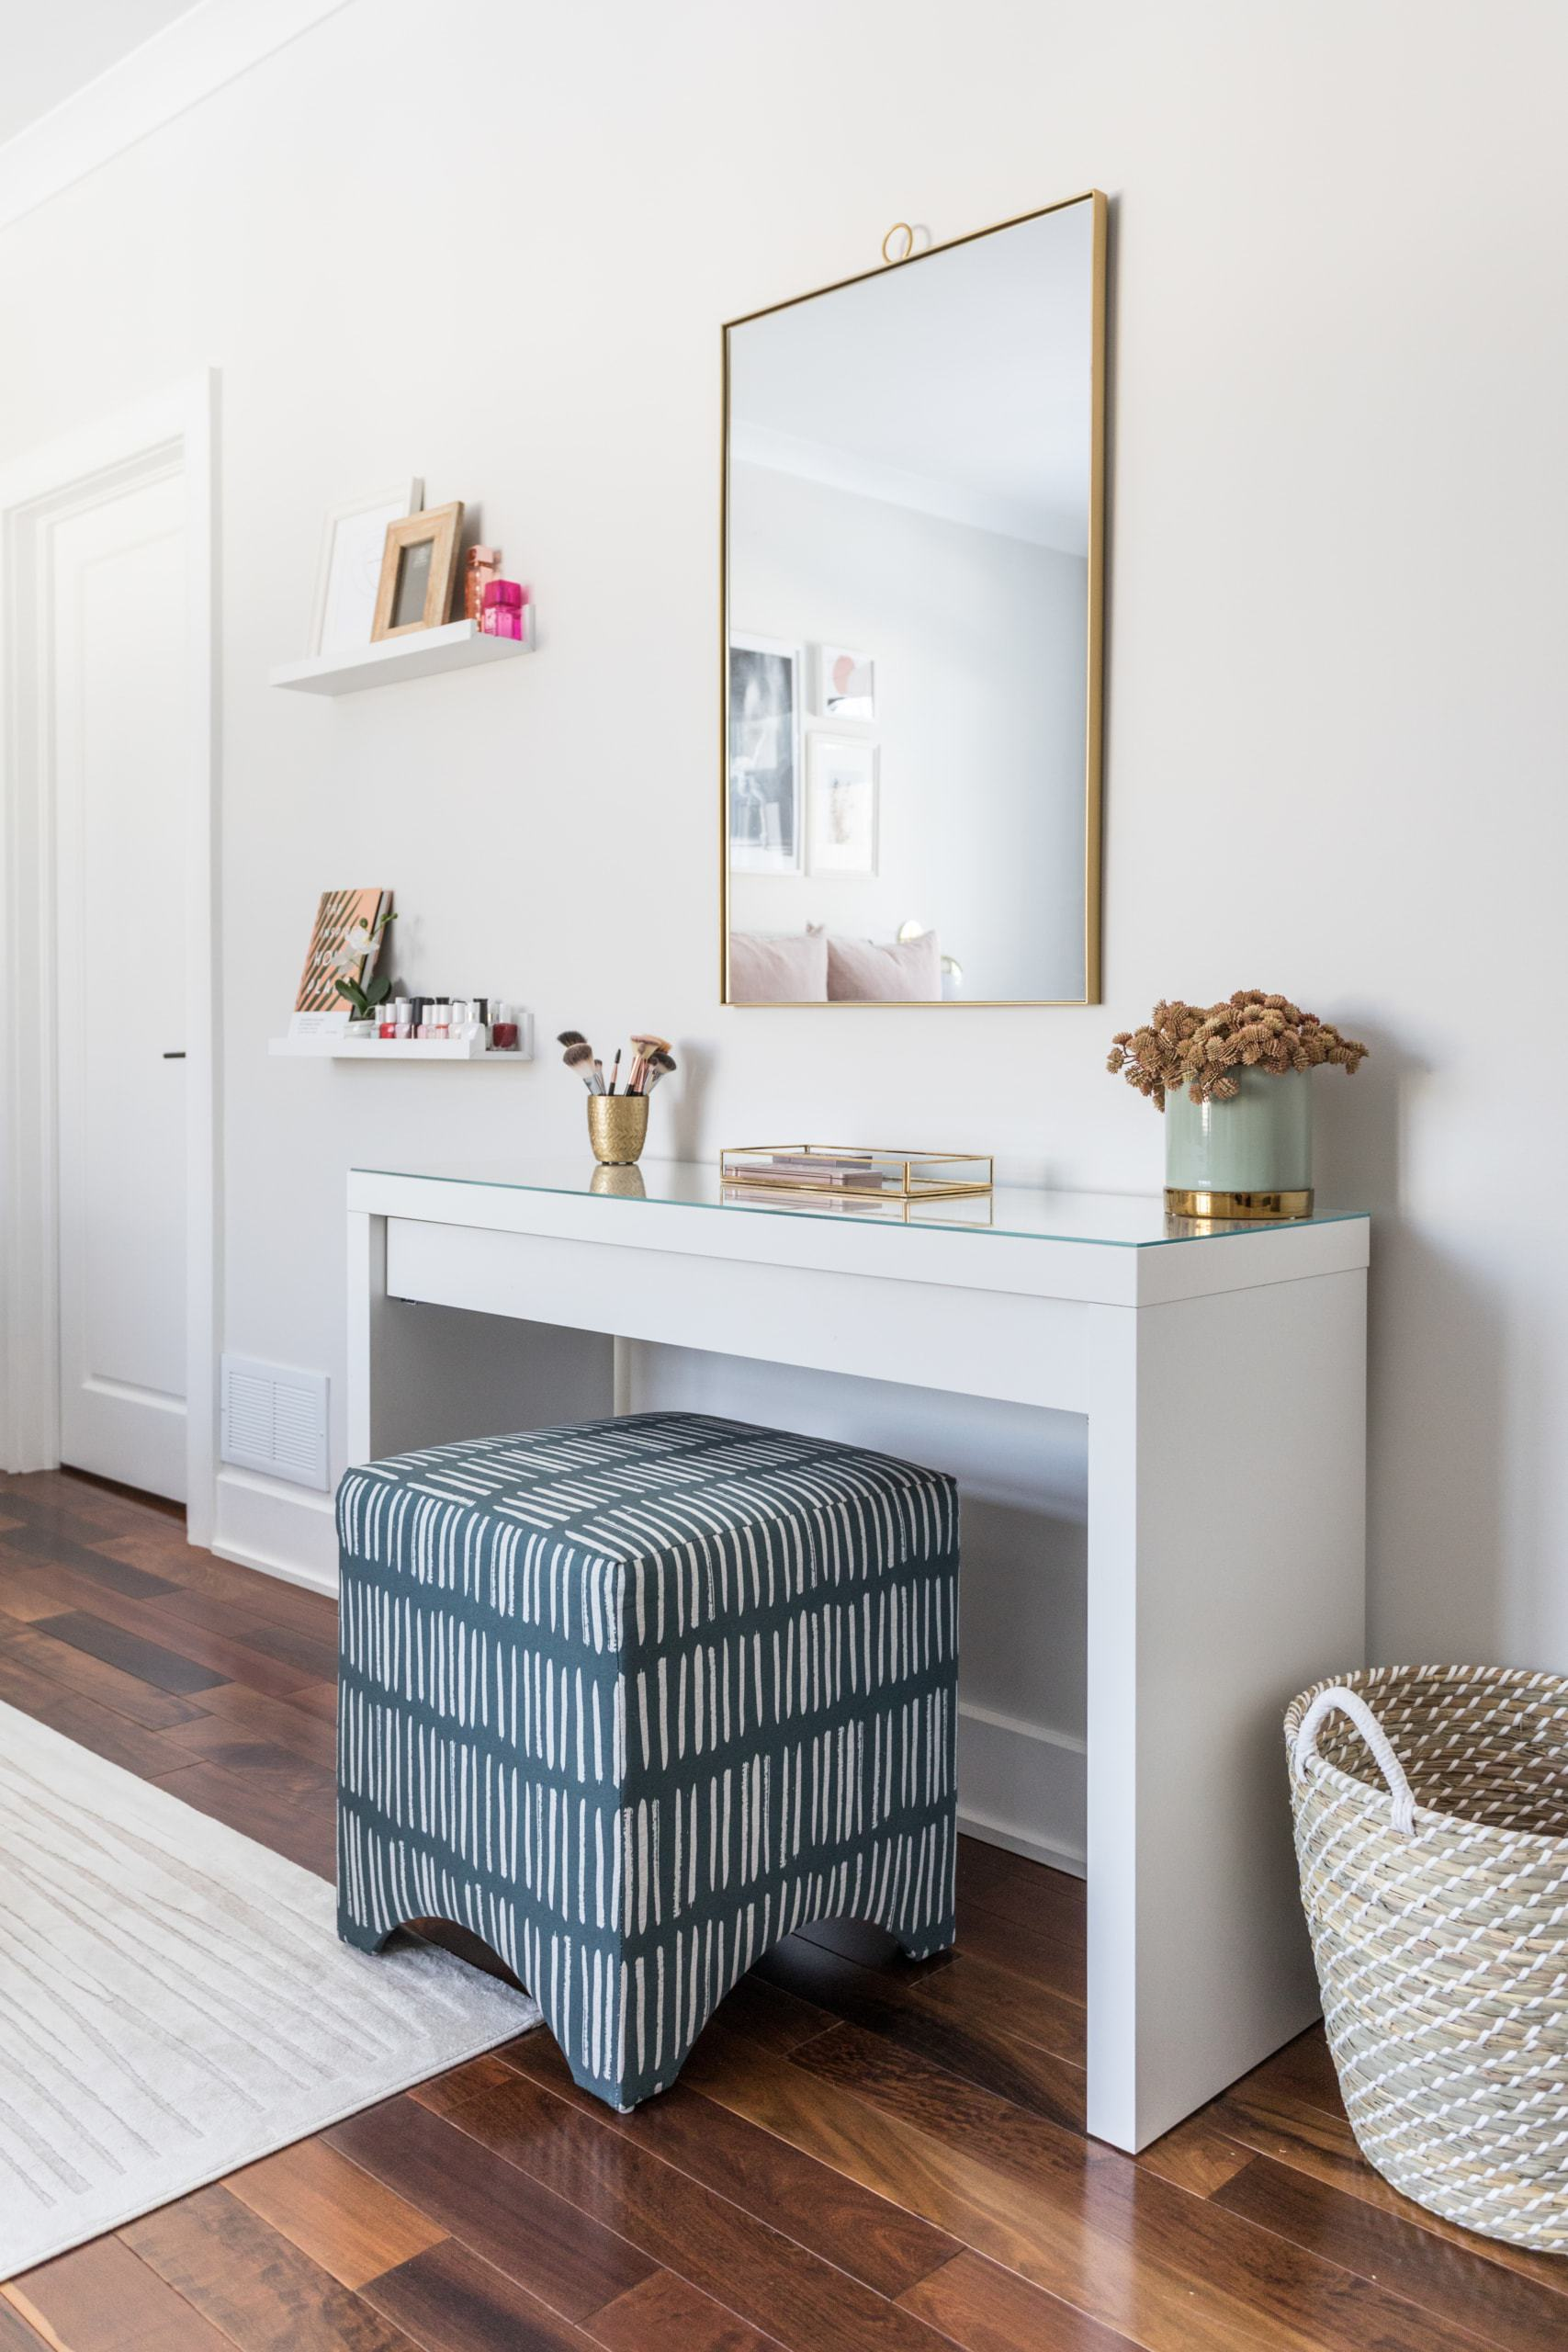 White table against the wall with various decorations on it